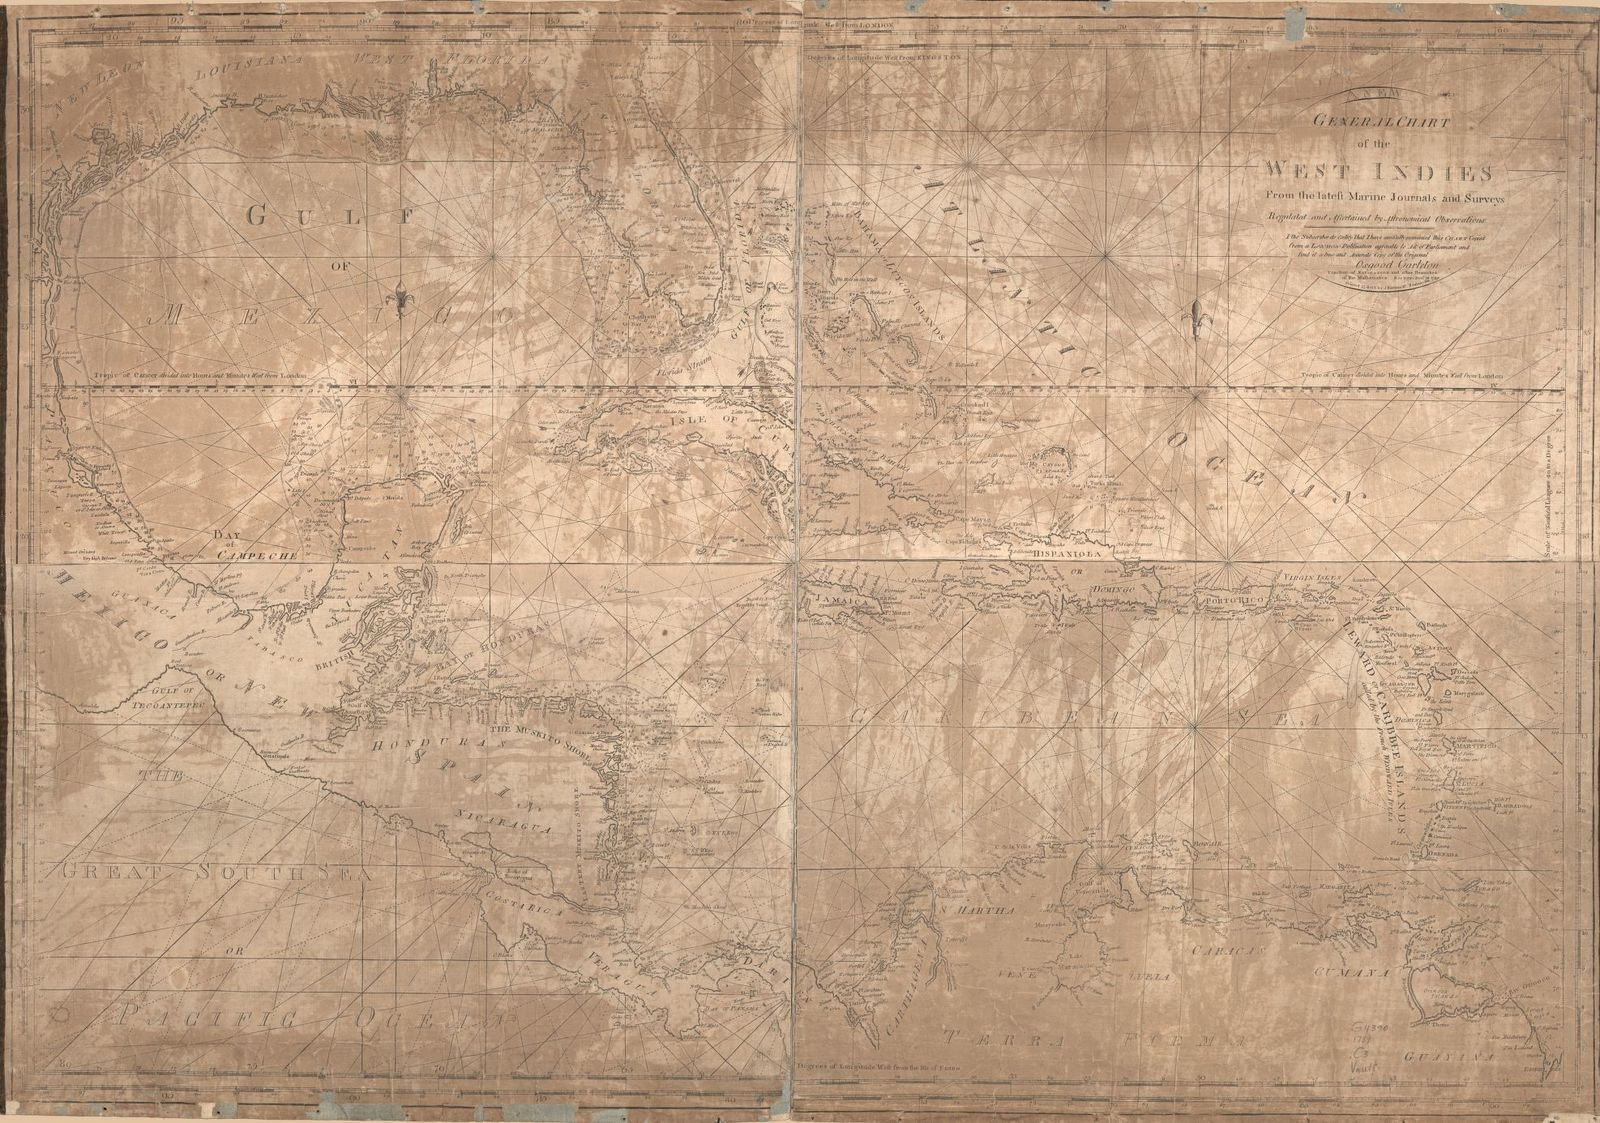 A new general chart of the West Indies, from the latest marine journals and surveys; regulated and ascertained by astronomical observations. I, the subscriber, do certify that I have carefully examined this chart copied from a London publication agreeable to Act of Parliament and find it a true and accurate copy of the original.